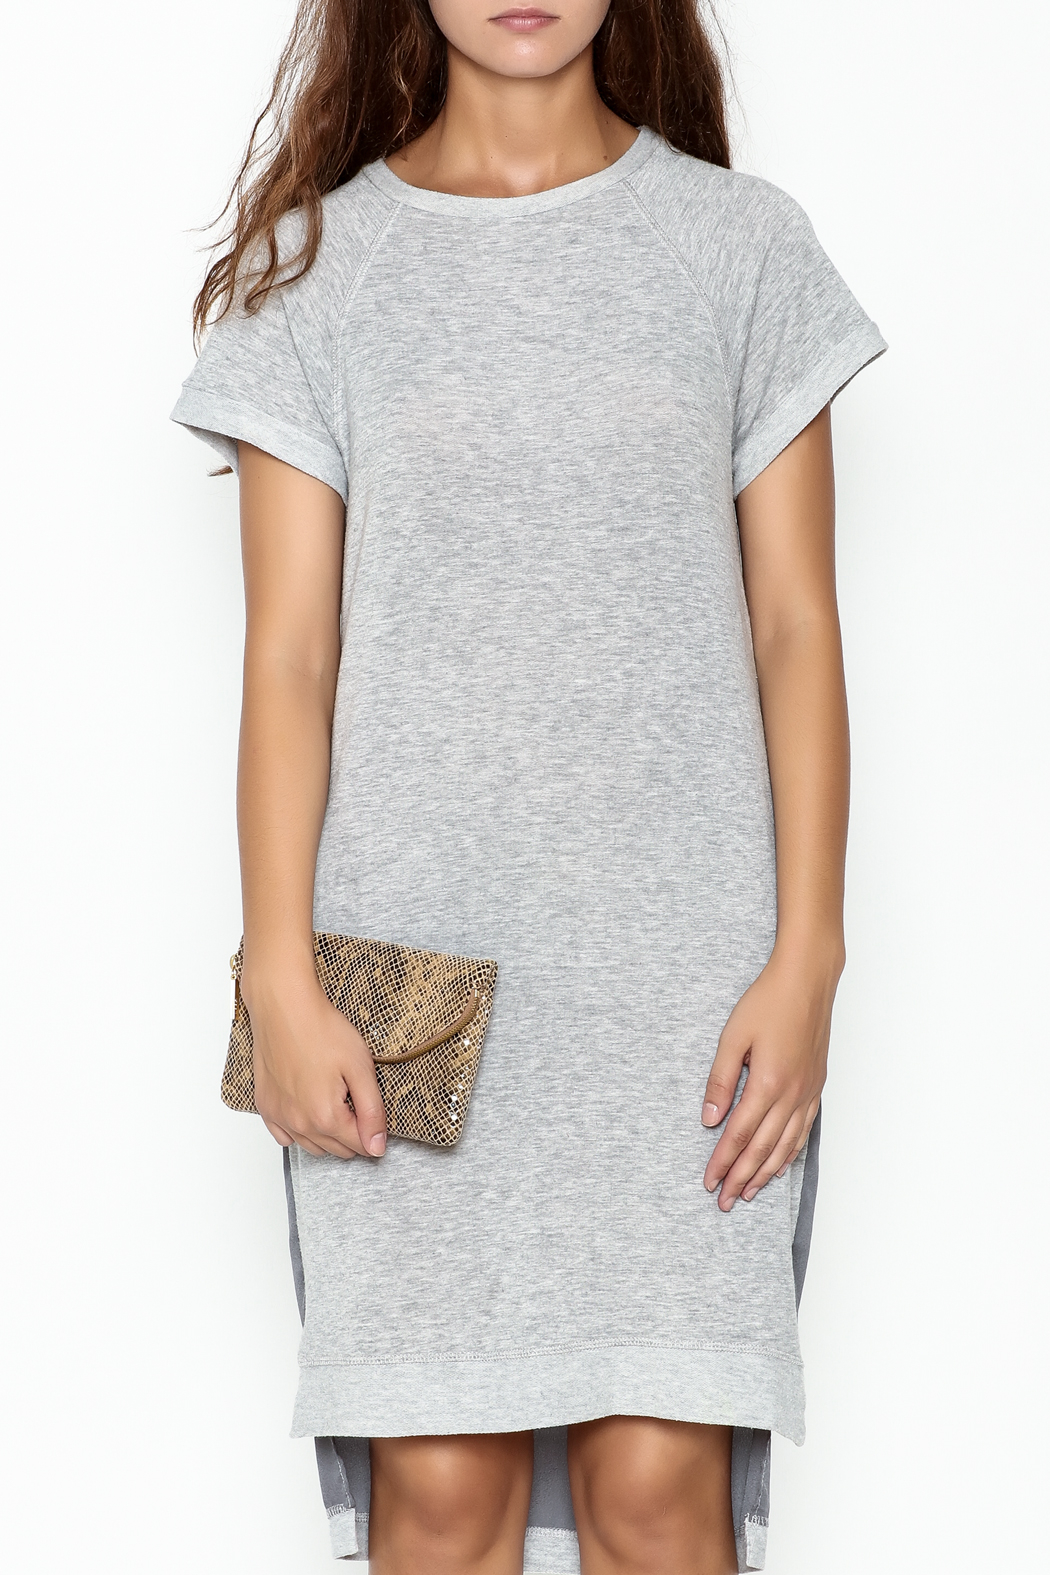 coin t shirt dress from utah by a la mode